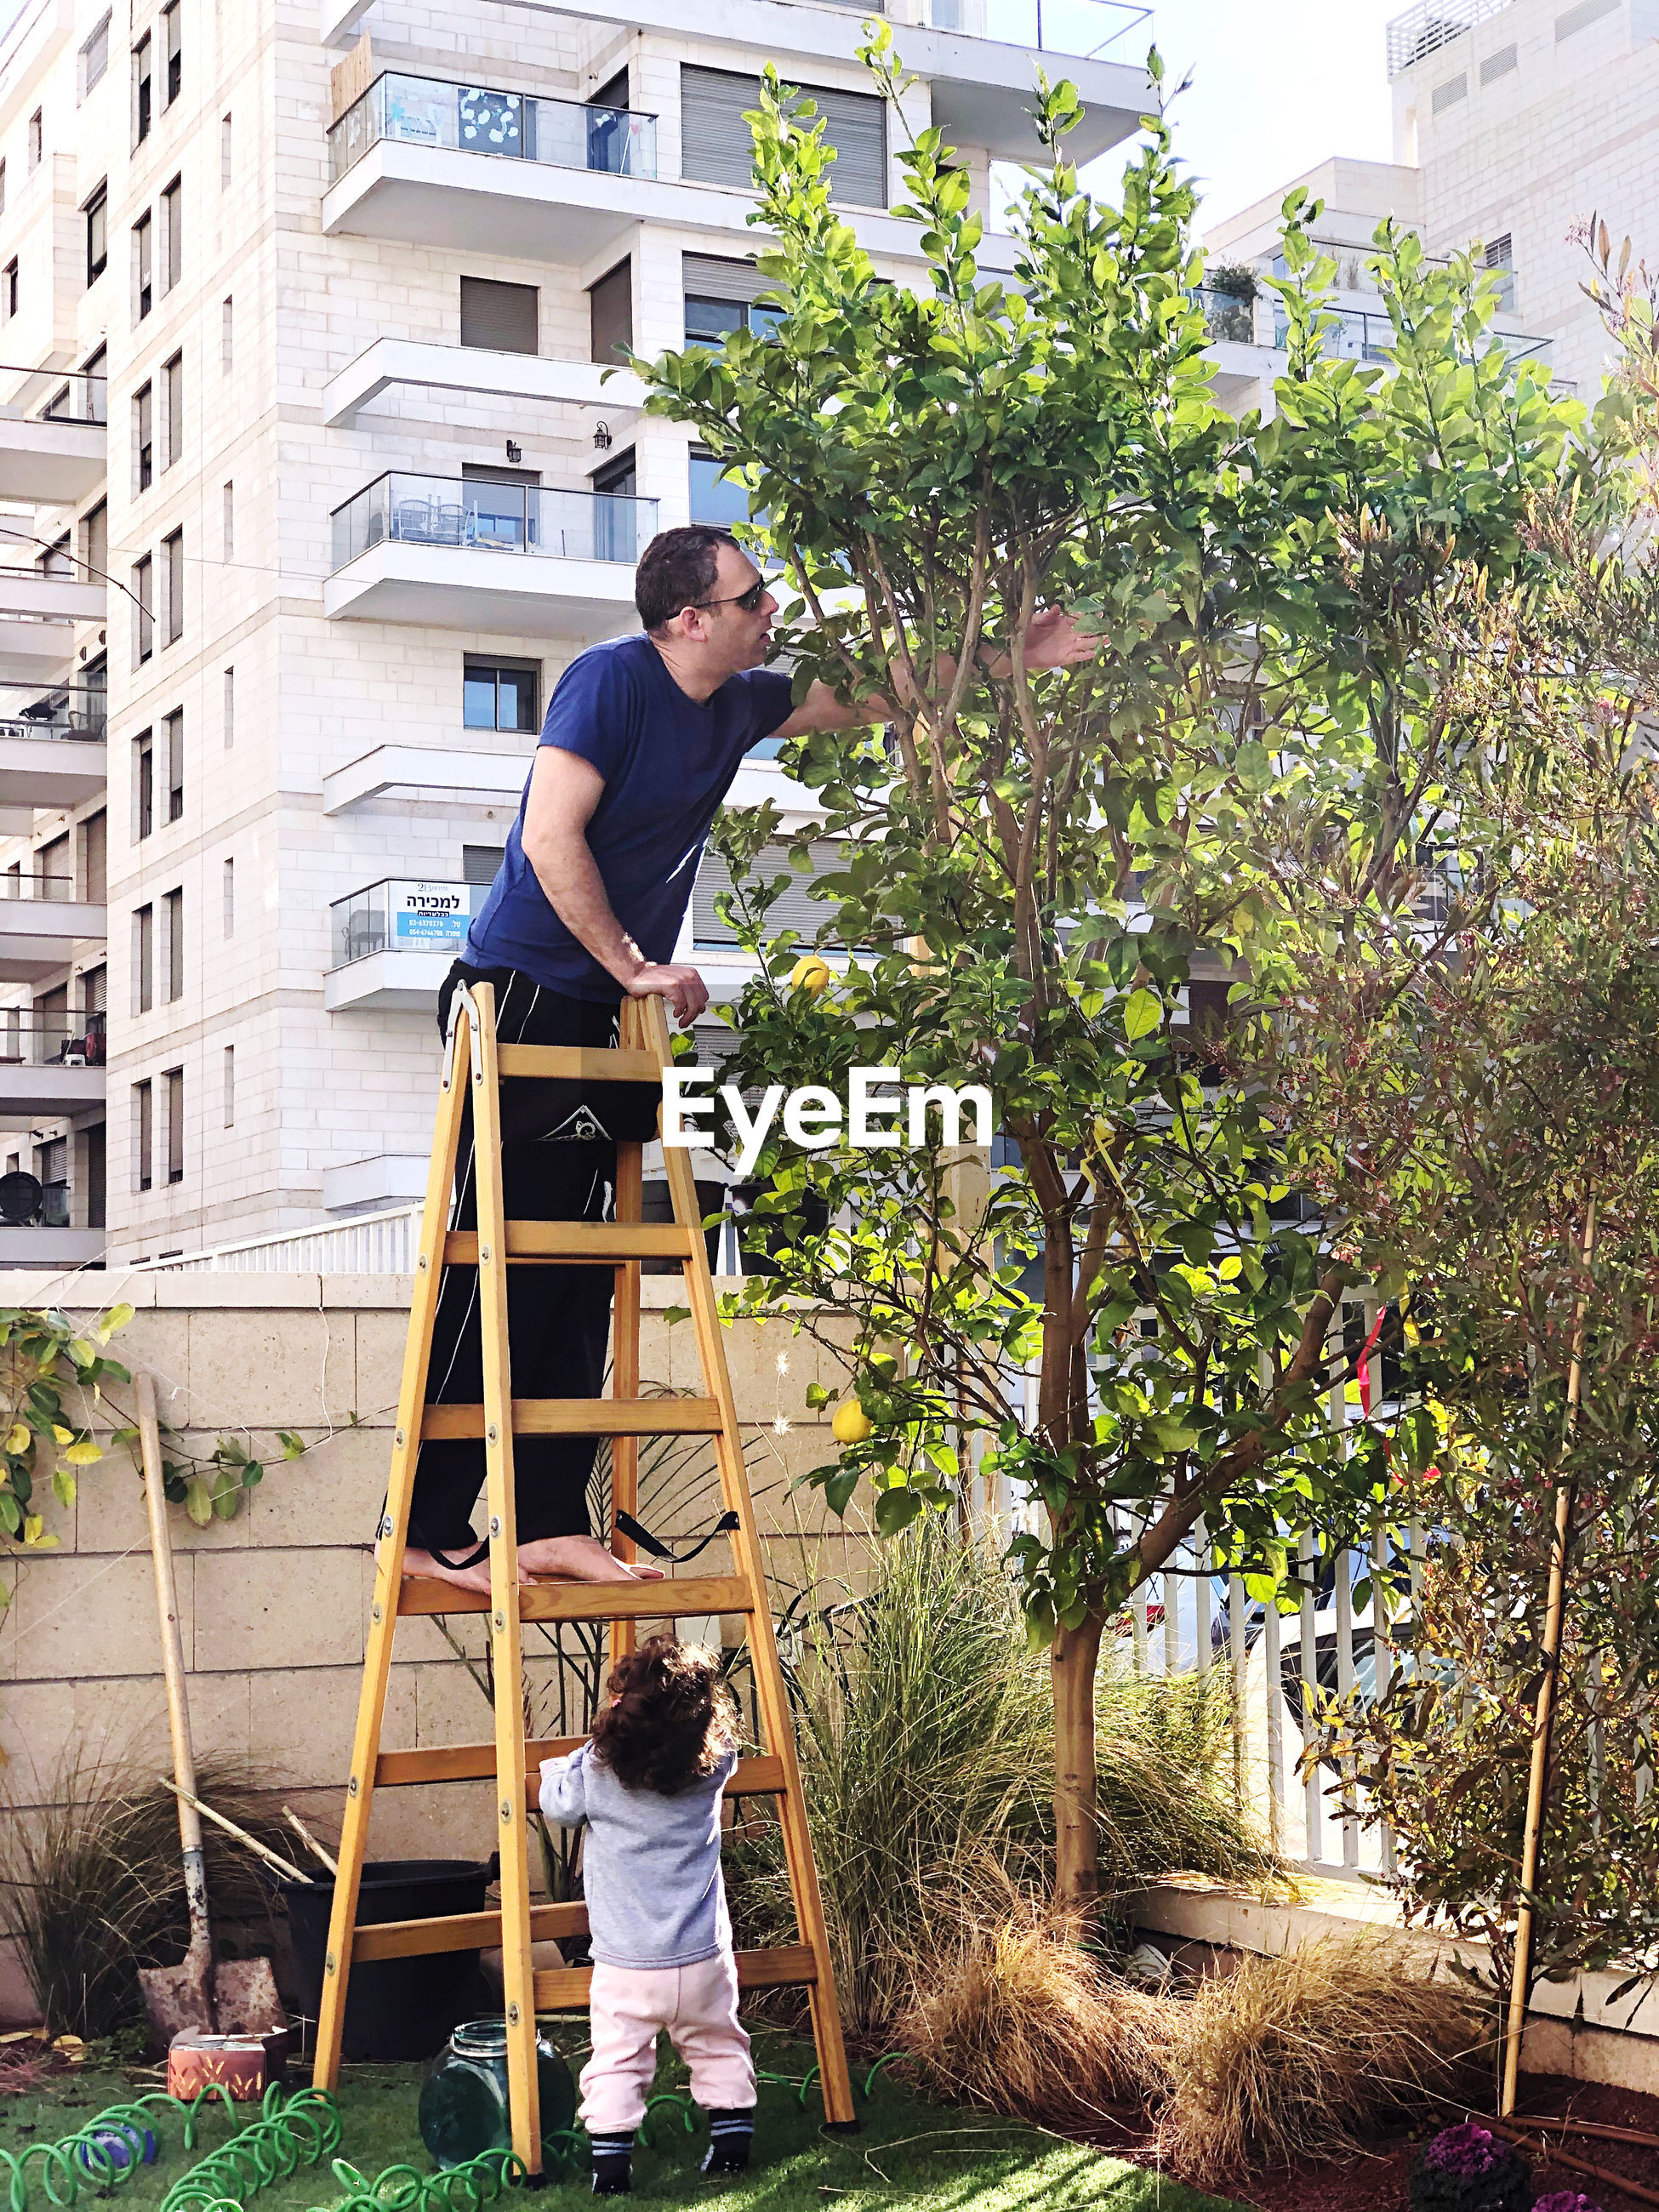 Man standing on a ladder in front of building and a his daughter watching him